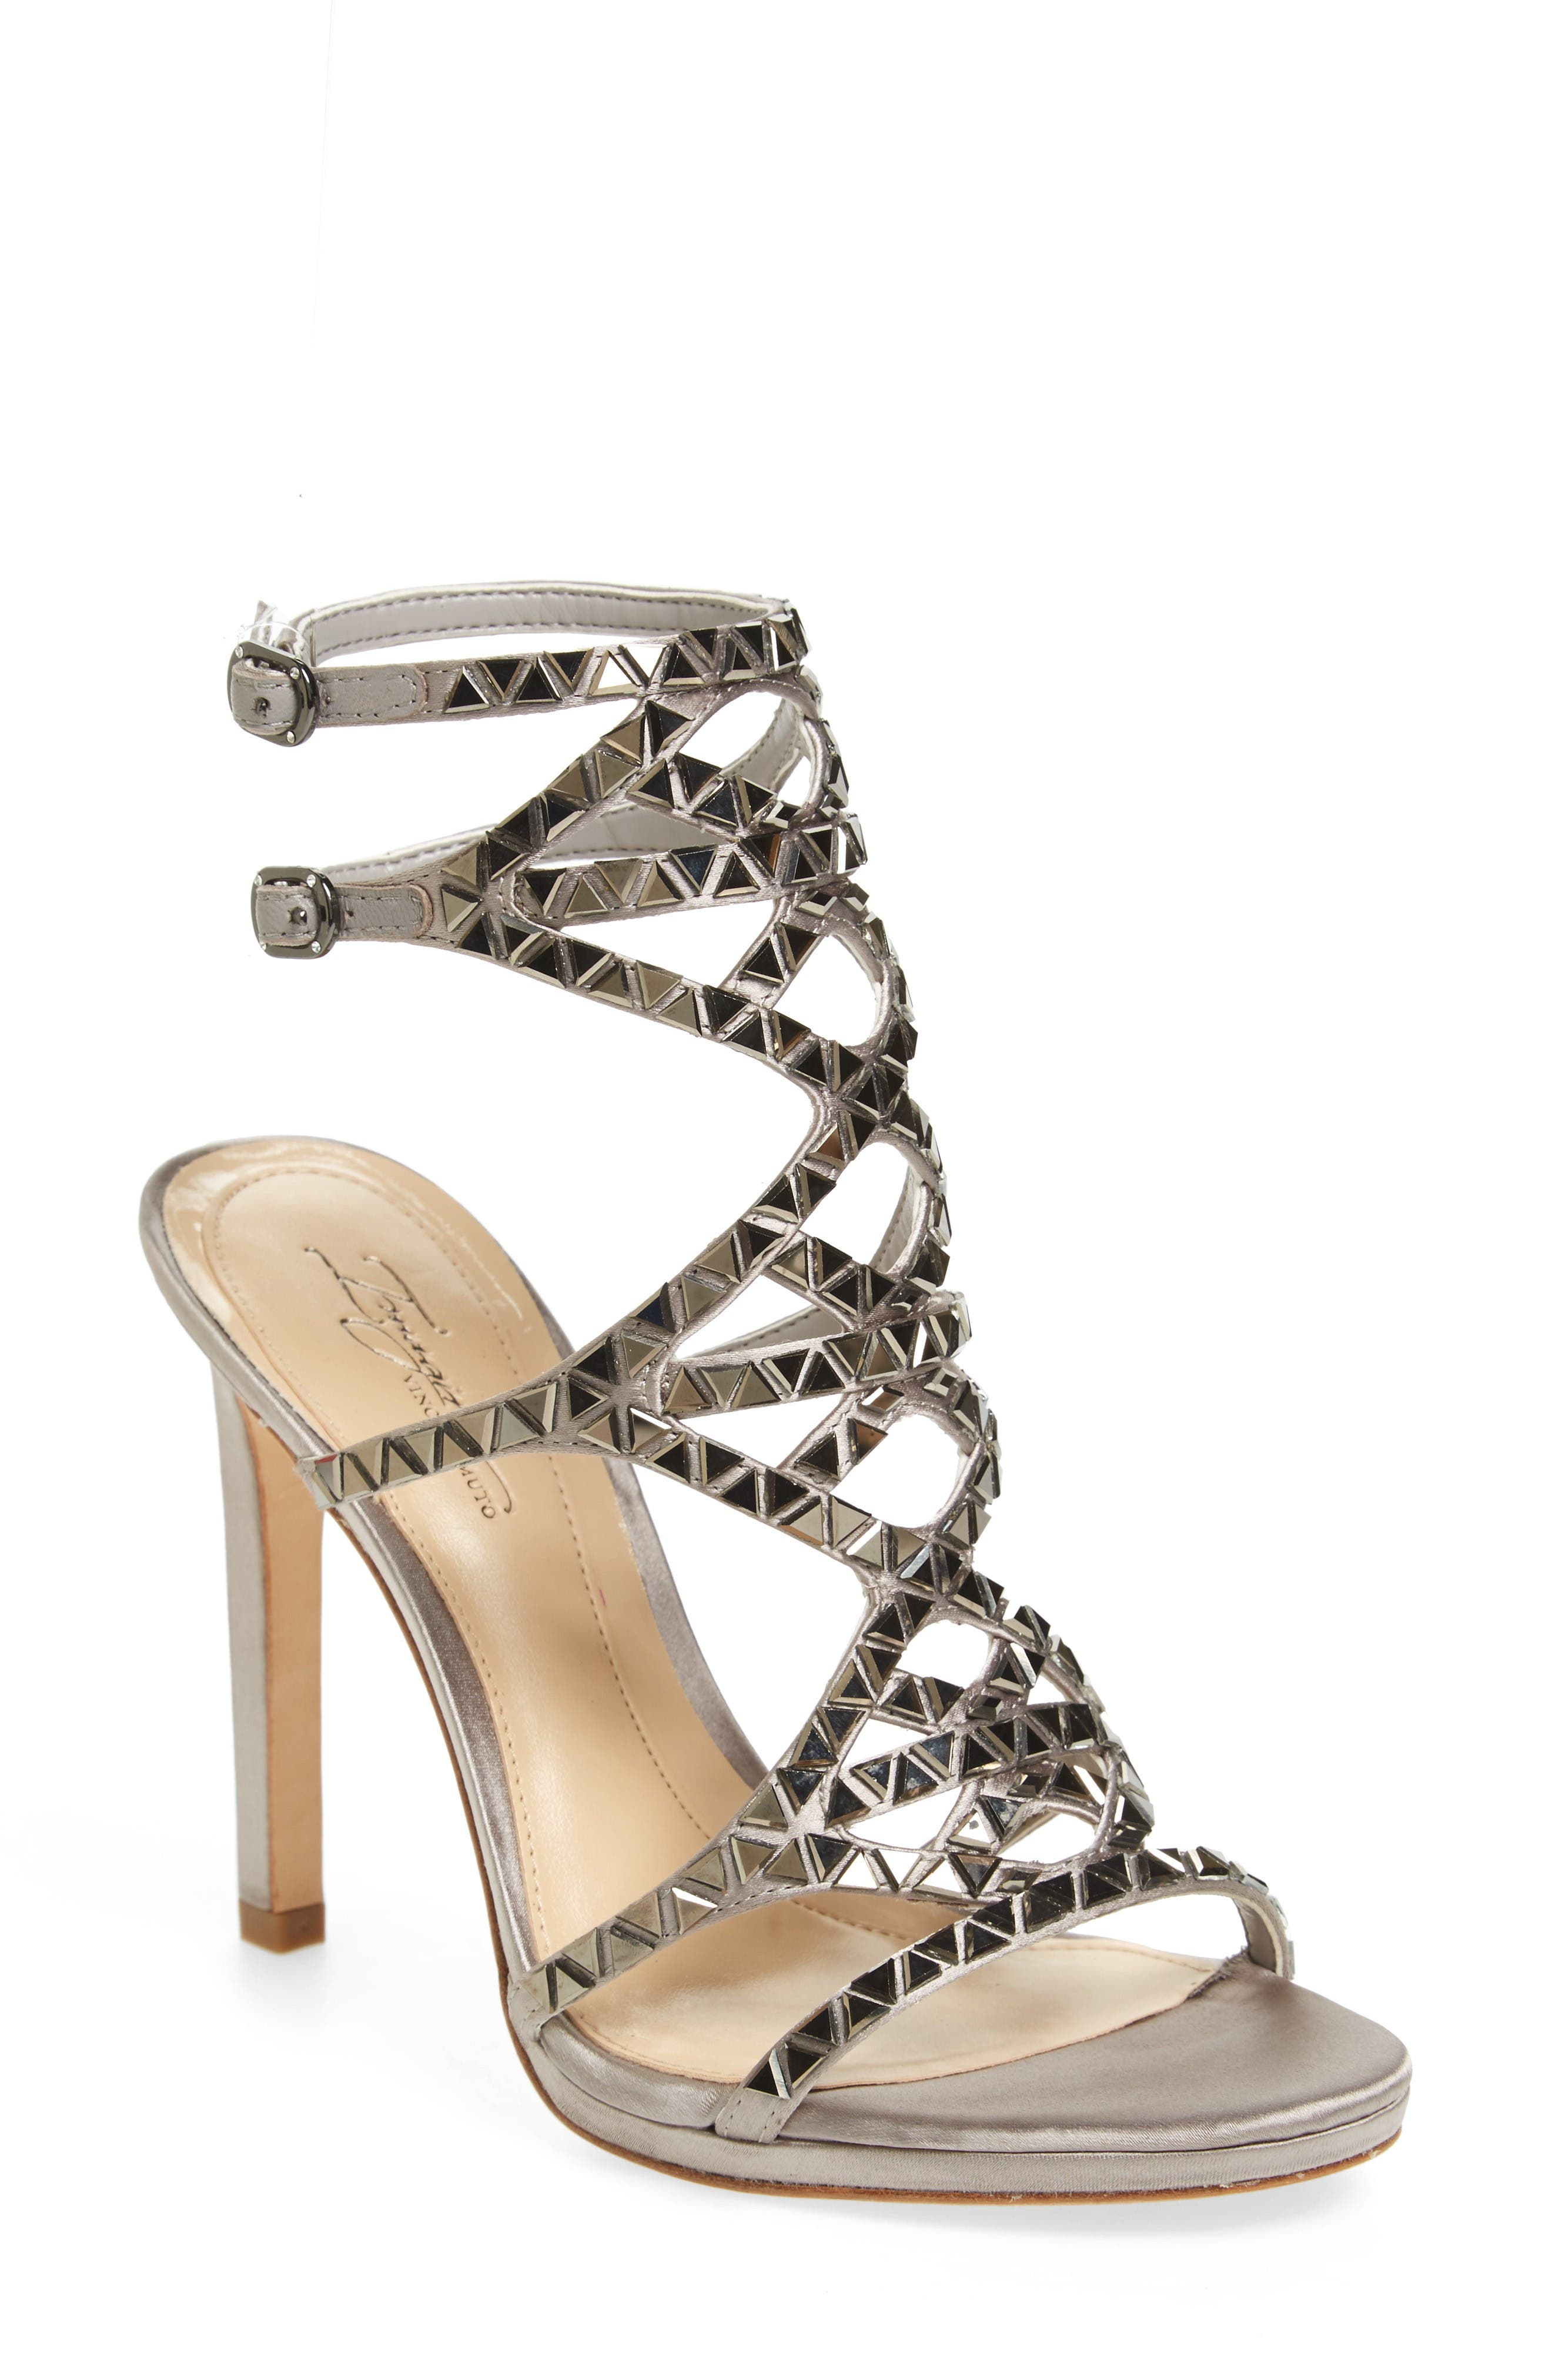 Main Image - Imagine by Vince Camuto Galvin Sandal (Women)